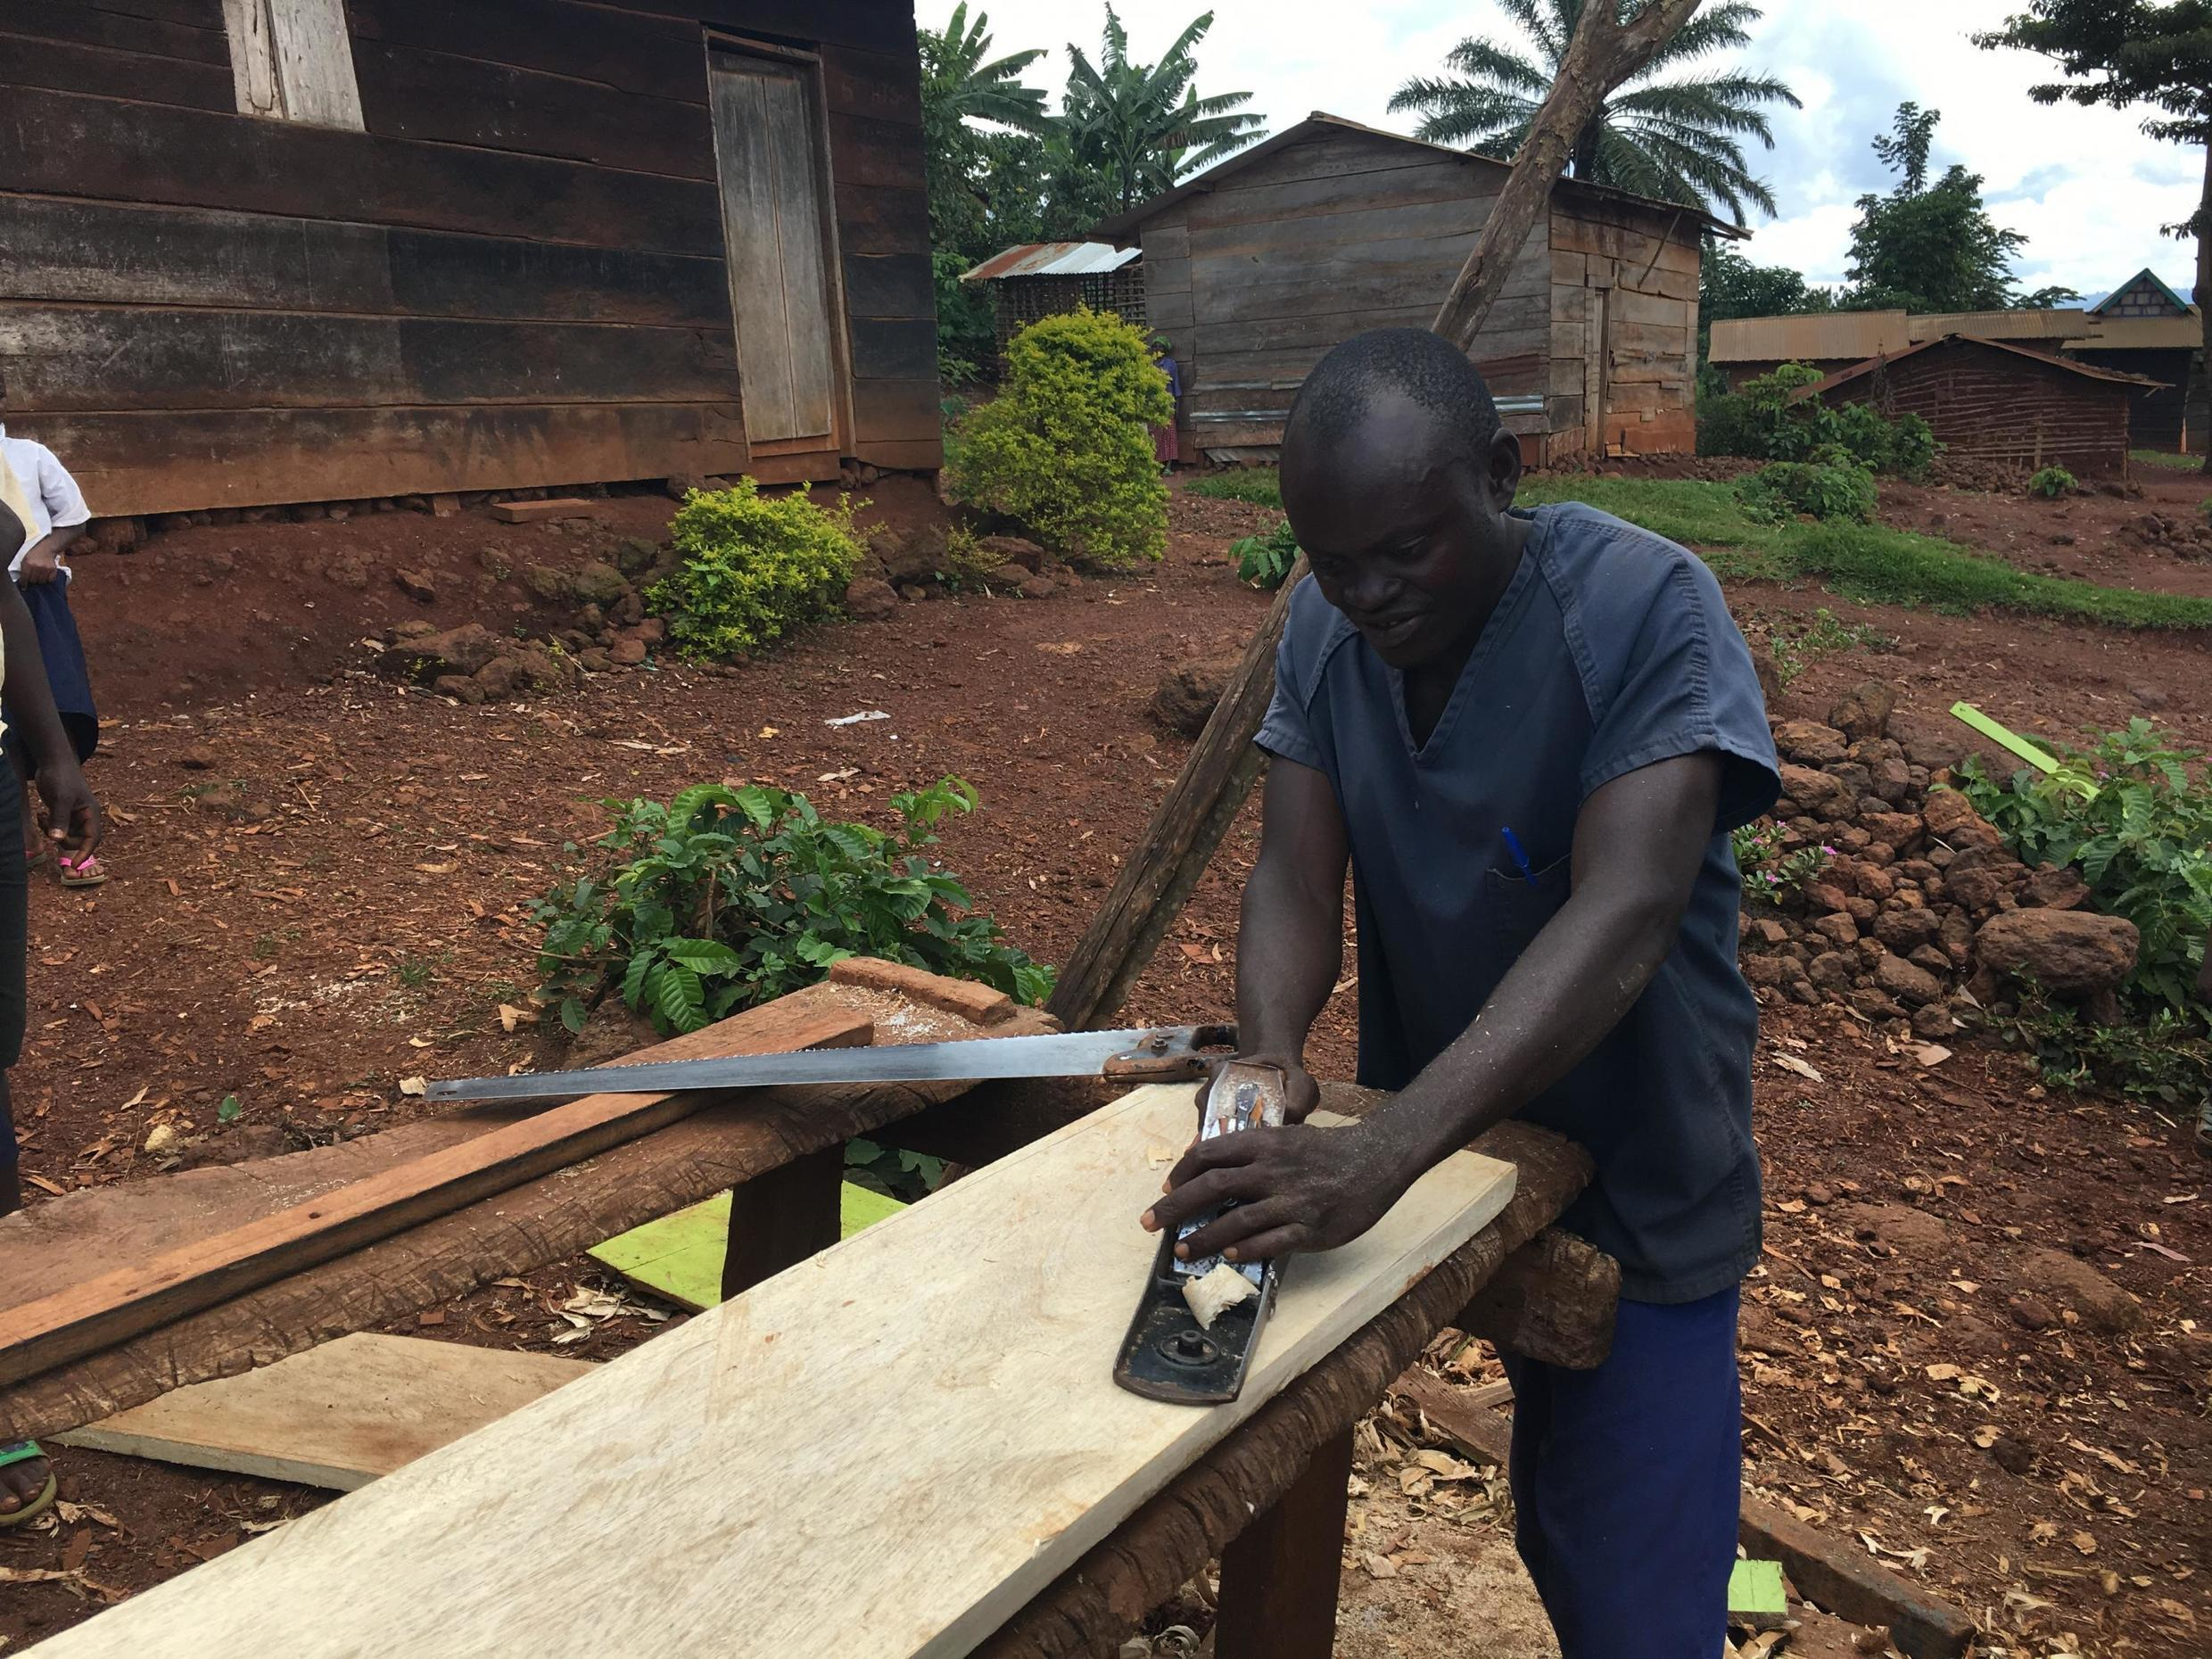 Carpenter Sombi Hassani works outside his atelier in Bingo, a small town in North Kivu, DRC